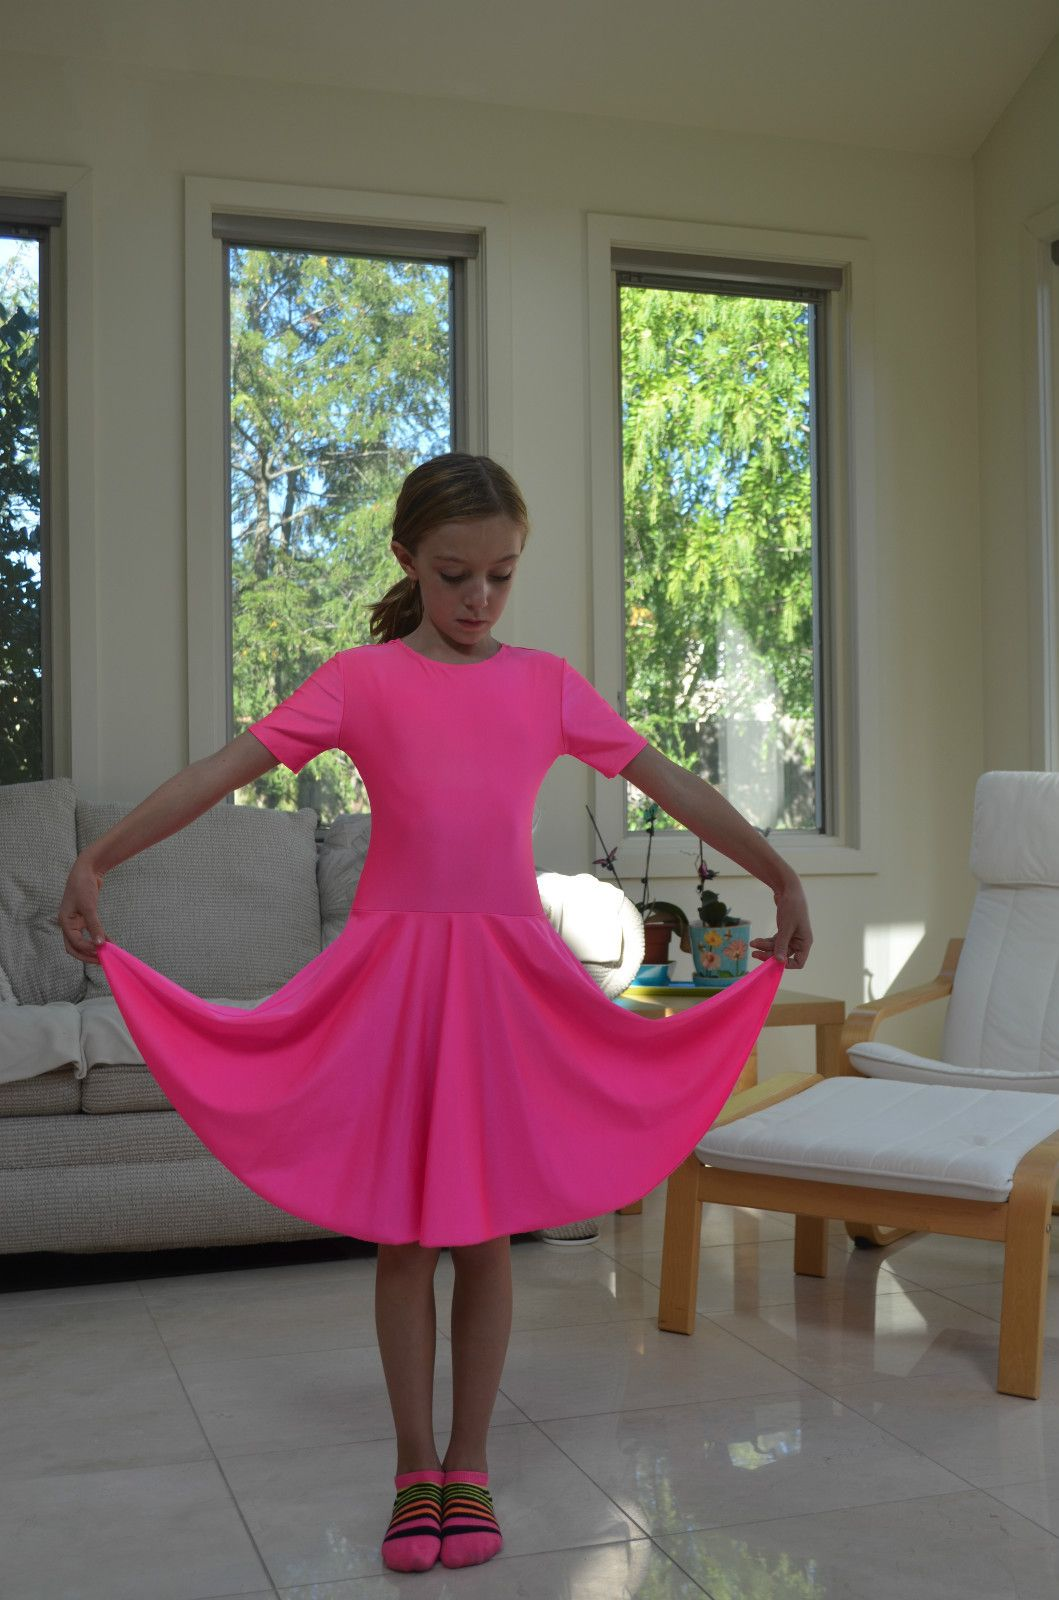 11 Year Girl Bedroom Decoration Ideas: Girl Ballroom Dress 9 11 Years Old Ndca Competition